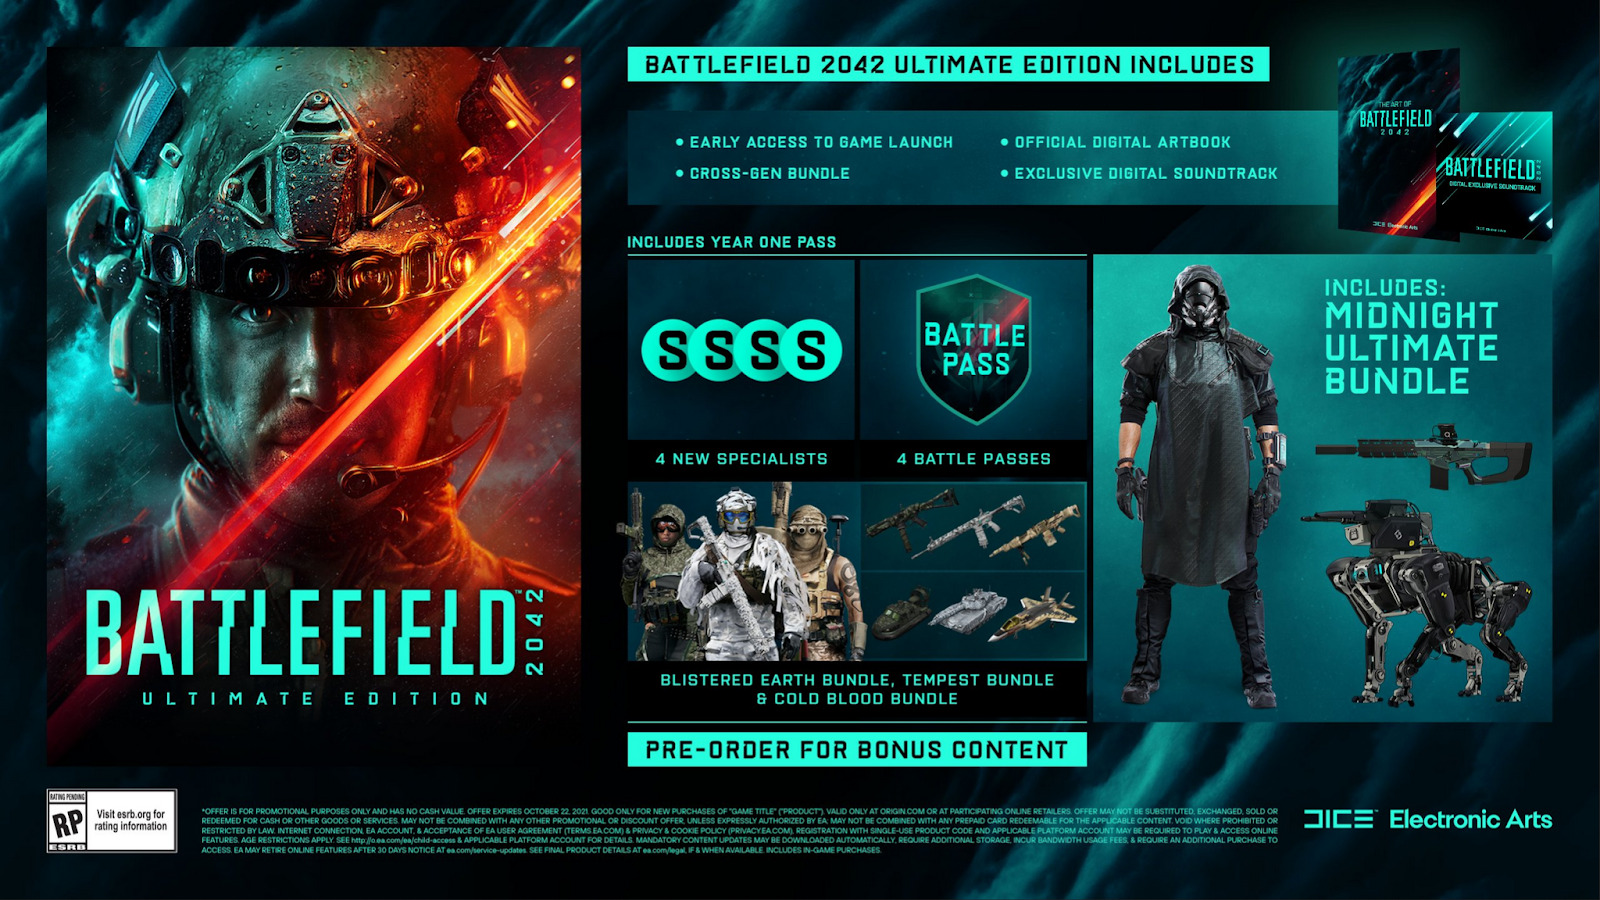 Compare Battlefield 2042 Ultimate Edition Prices Online